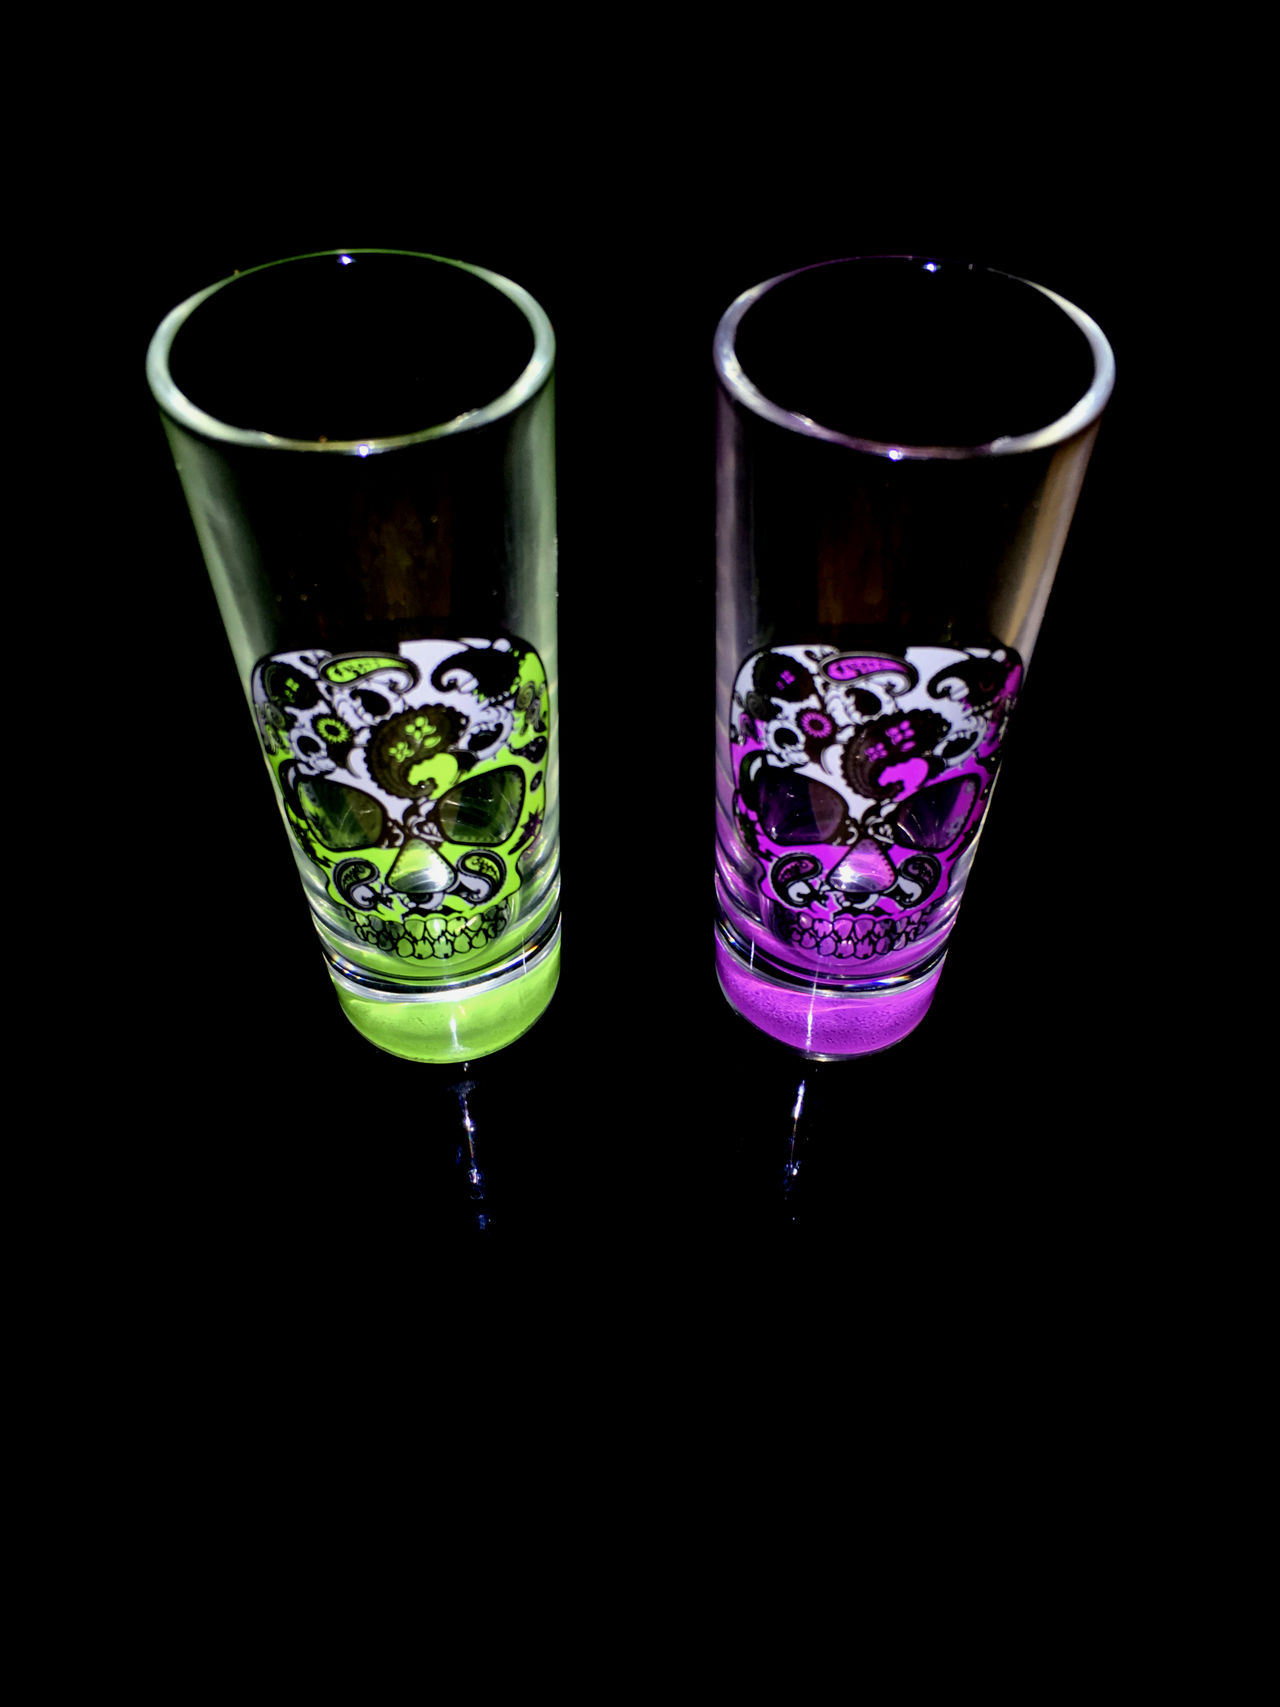 Day of the Dead shot glasses reflecting on black background Black Black Backdrop Black Background Cinco De Mayo Colorful Dark Dark Darkness Darkness And Light Day Of The Dead Fesitival Green IPhoneography Iphonephotography Light And Dark Lowkey  Minimalism Minimalist Minimalistic Multi Colored Purple Shot Glass Shot Glasses